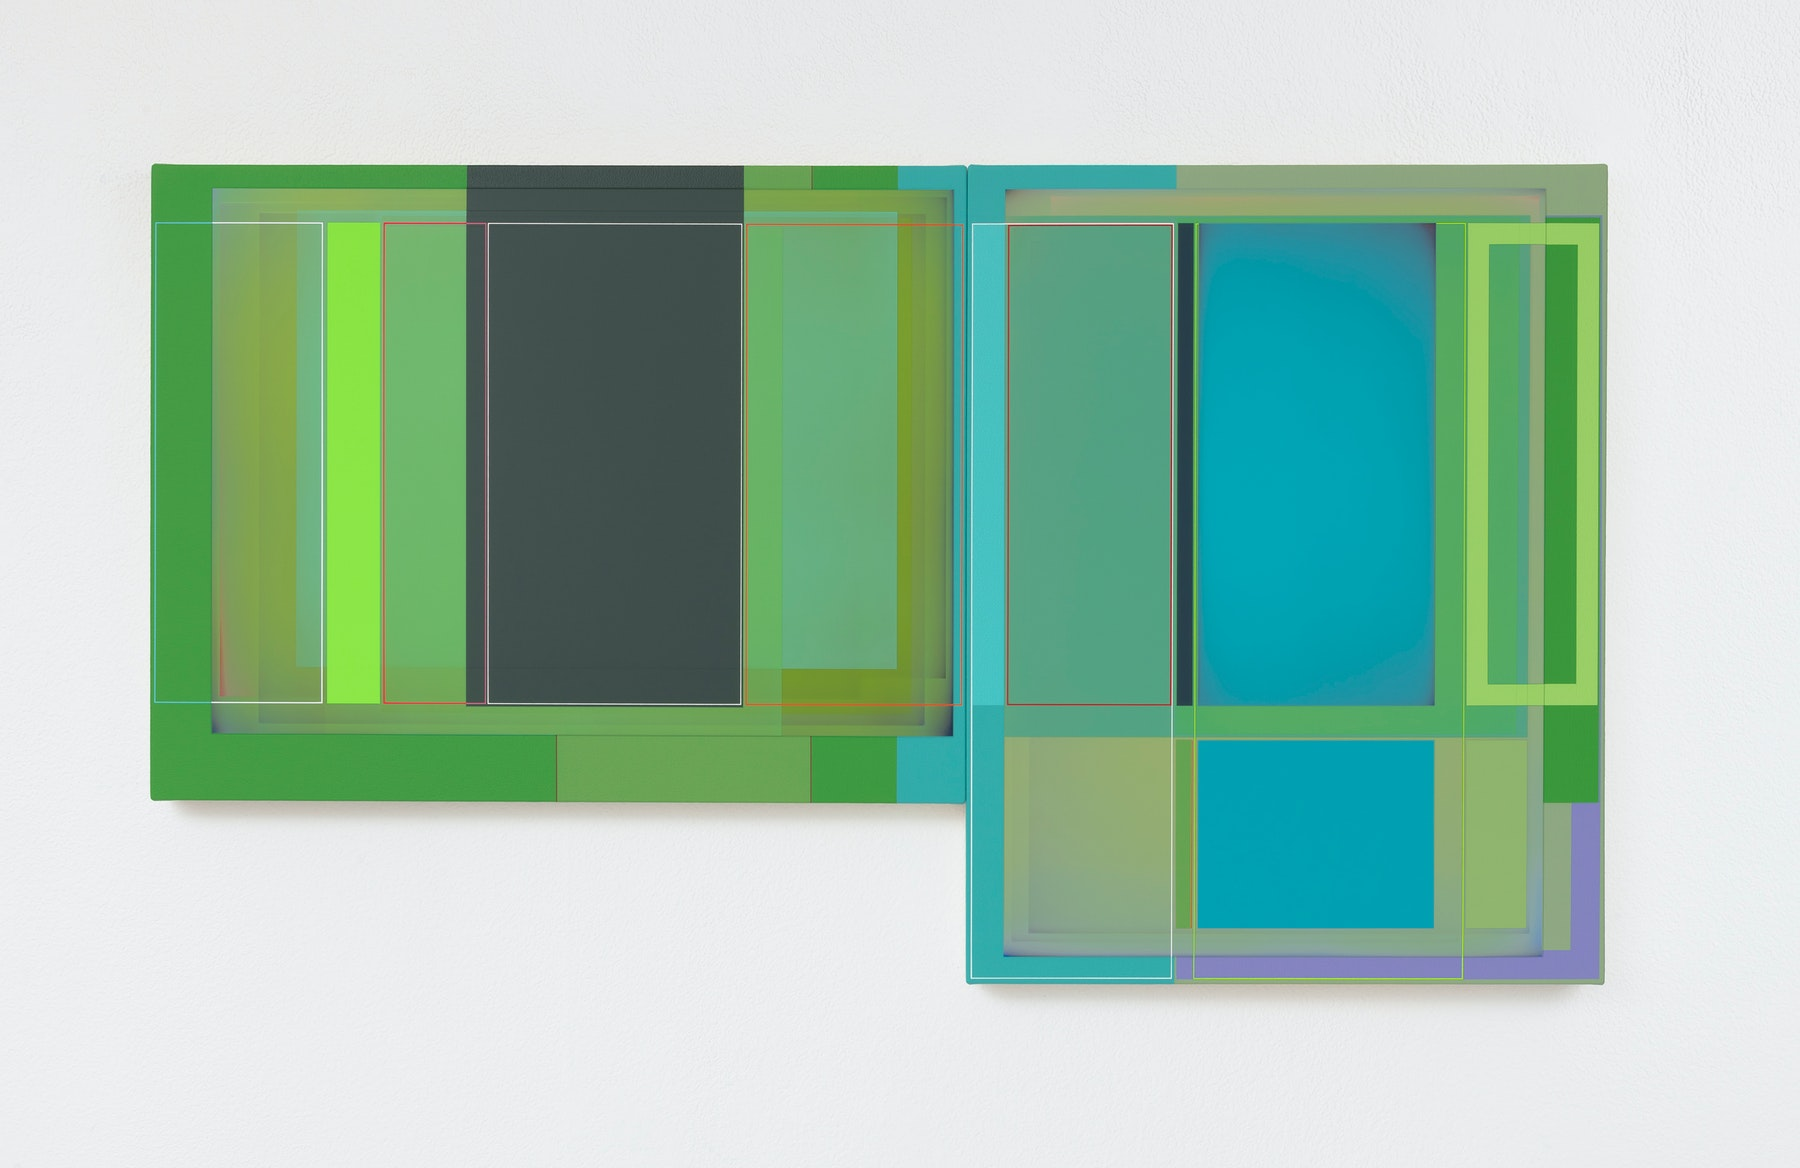 """Patrick Wilson """"Morning Light,"""" 2020 Acrylic on canvas 27"""" x 48"""" [HxW] (68.58 x 121.92 cm) Inventory #WIL582 Courtesy of the artist and Vielmetter Los Angeles Photo credit: Robert Wedemeyer"""